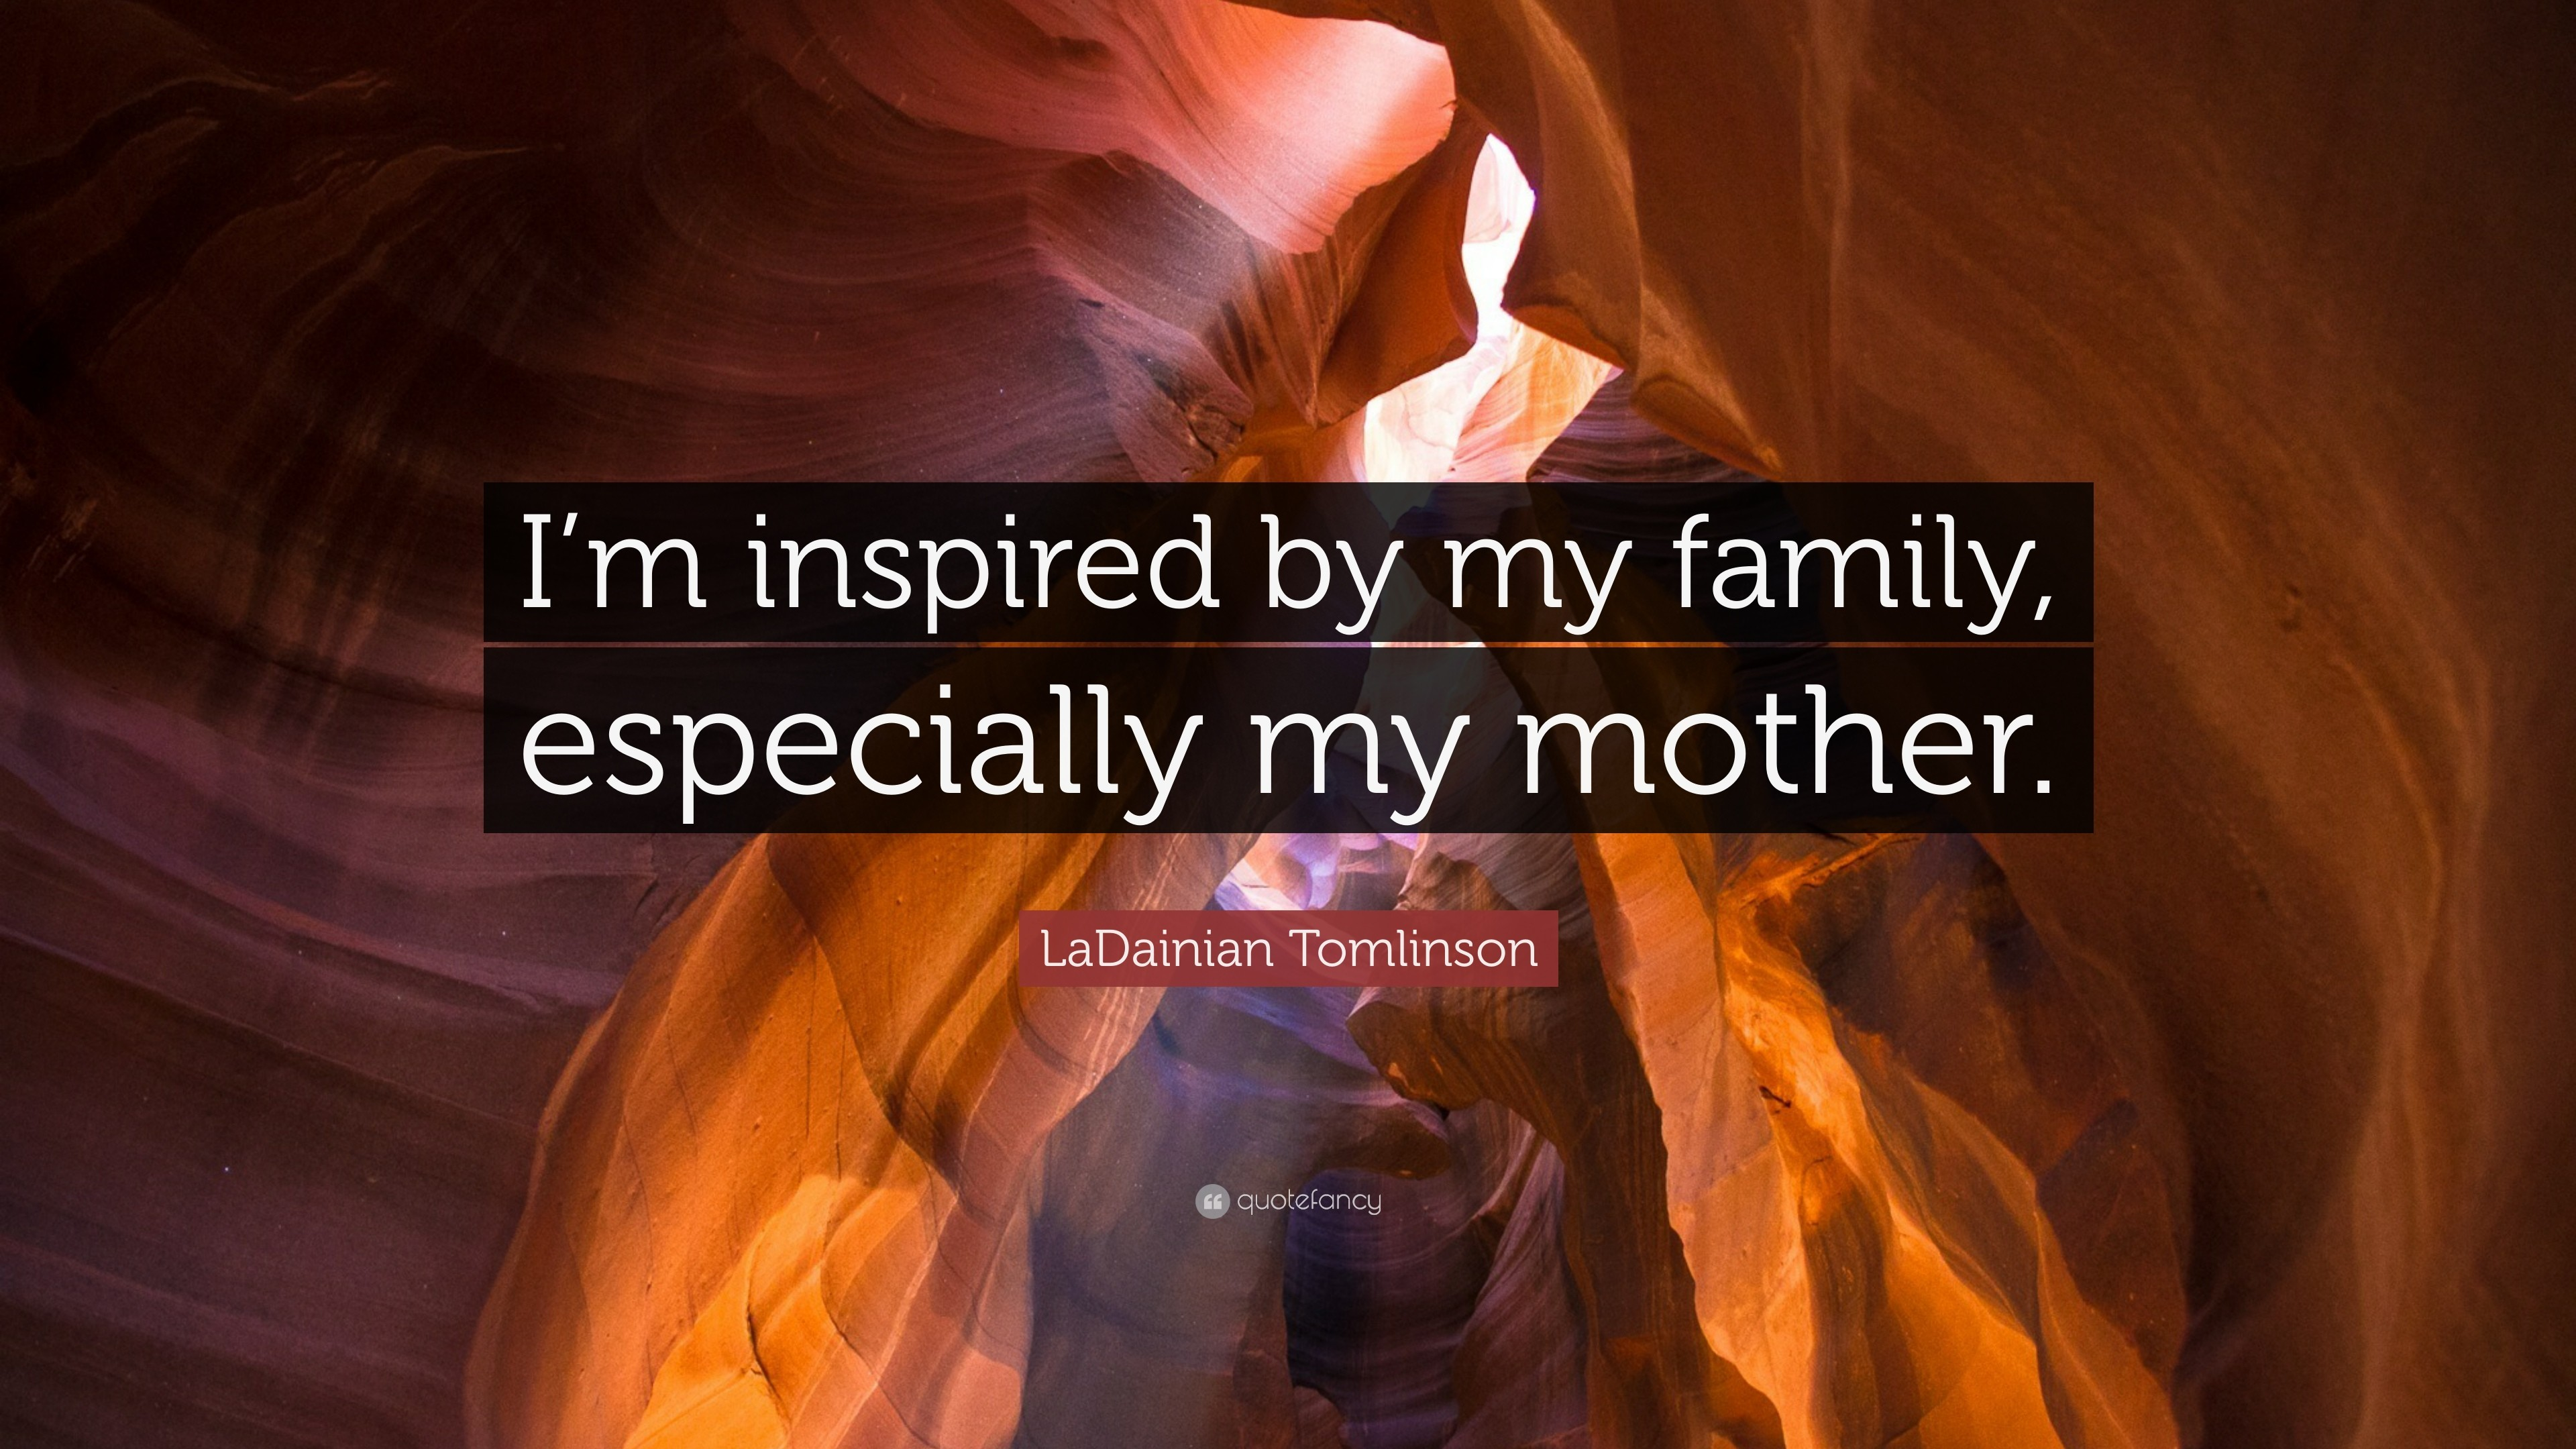 """LaDainian Tomlinson Quote: """"I'm inspired by my family, especially my mother"""